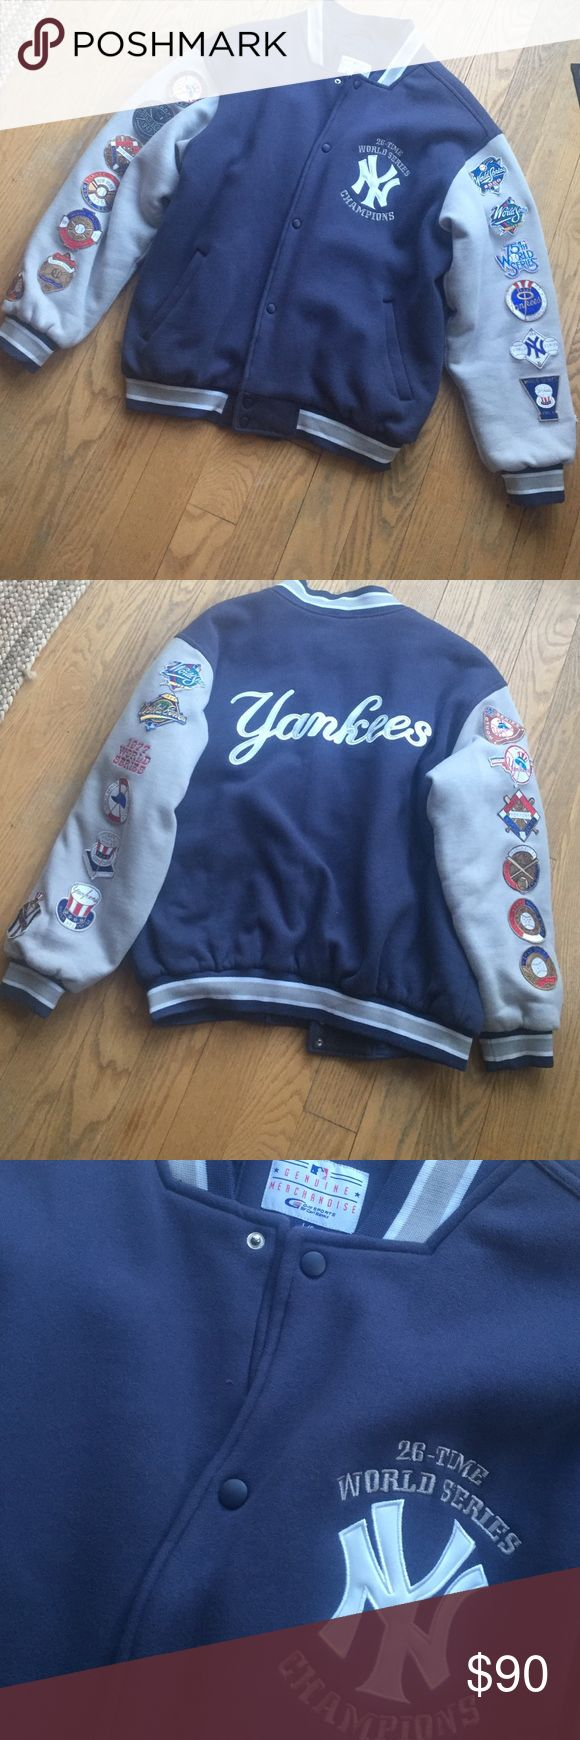 Yankee varsity jacket Yankee varsity jacket. Sweat shirt material. 26 patches for the 26 World Series wins. Yankees embroidered across the back and Yankees logo embroidered on the front. Lightly worn. Replica. Jackets & Coats Bomber & Varsity